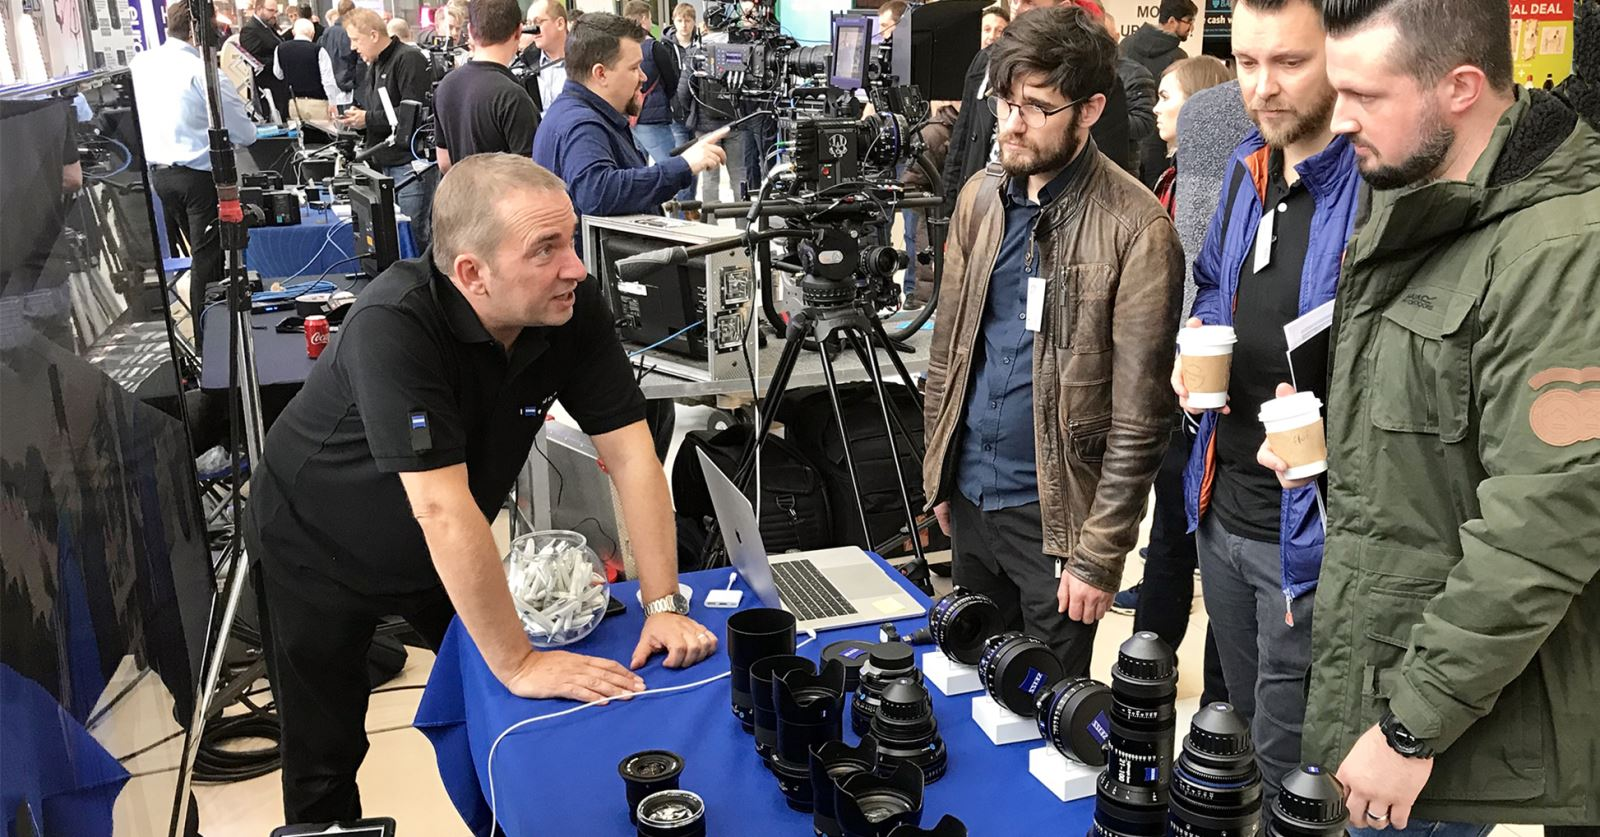 GTC sponsor Zeiss's stand attracts an interested crowd at the recent very successul KitPlus Show in Manchester